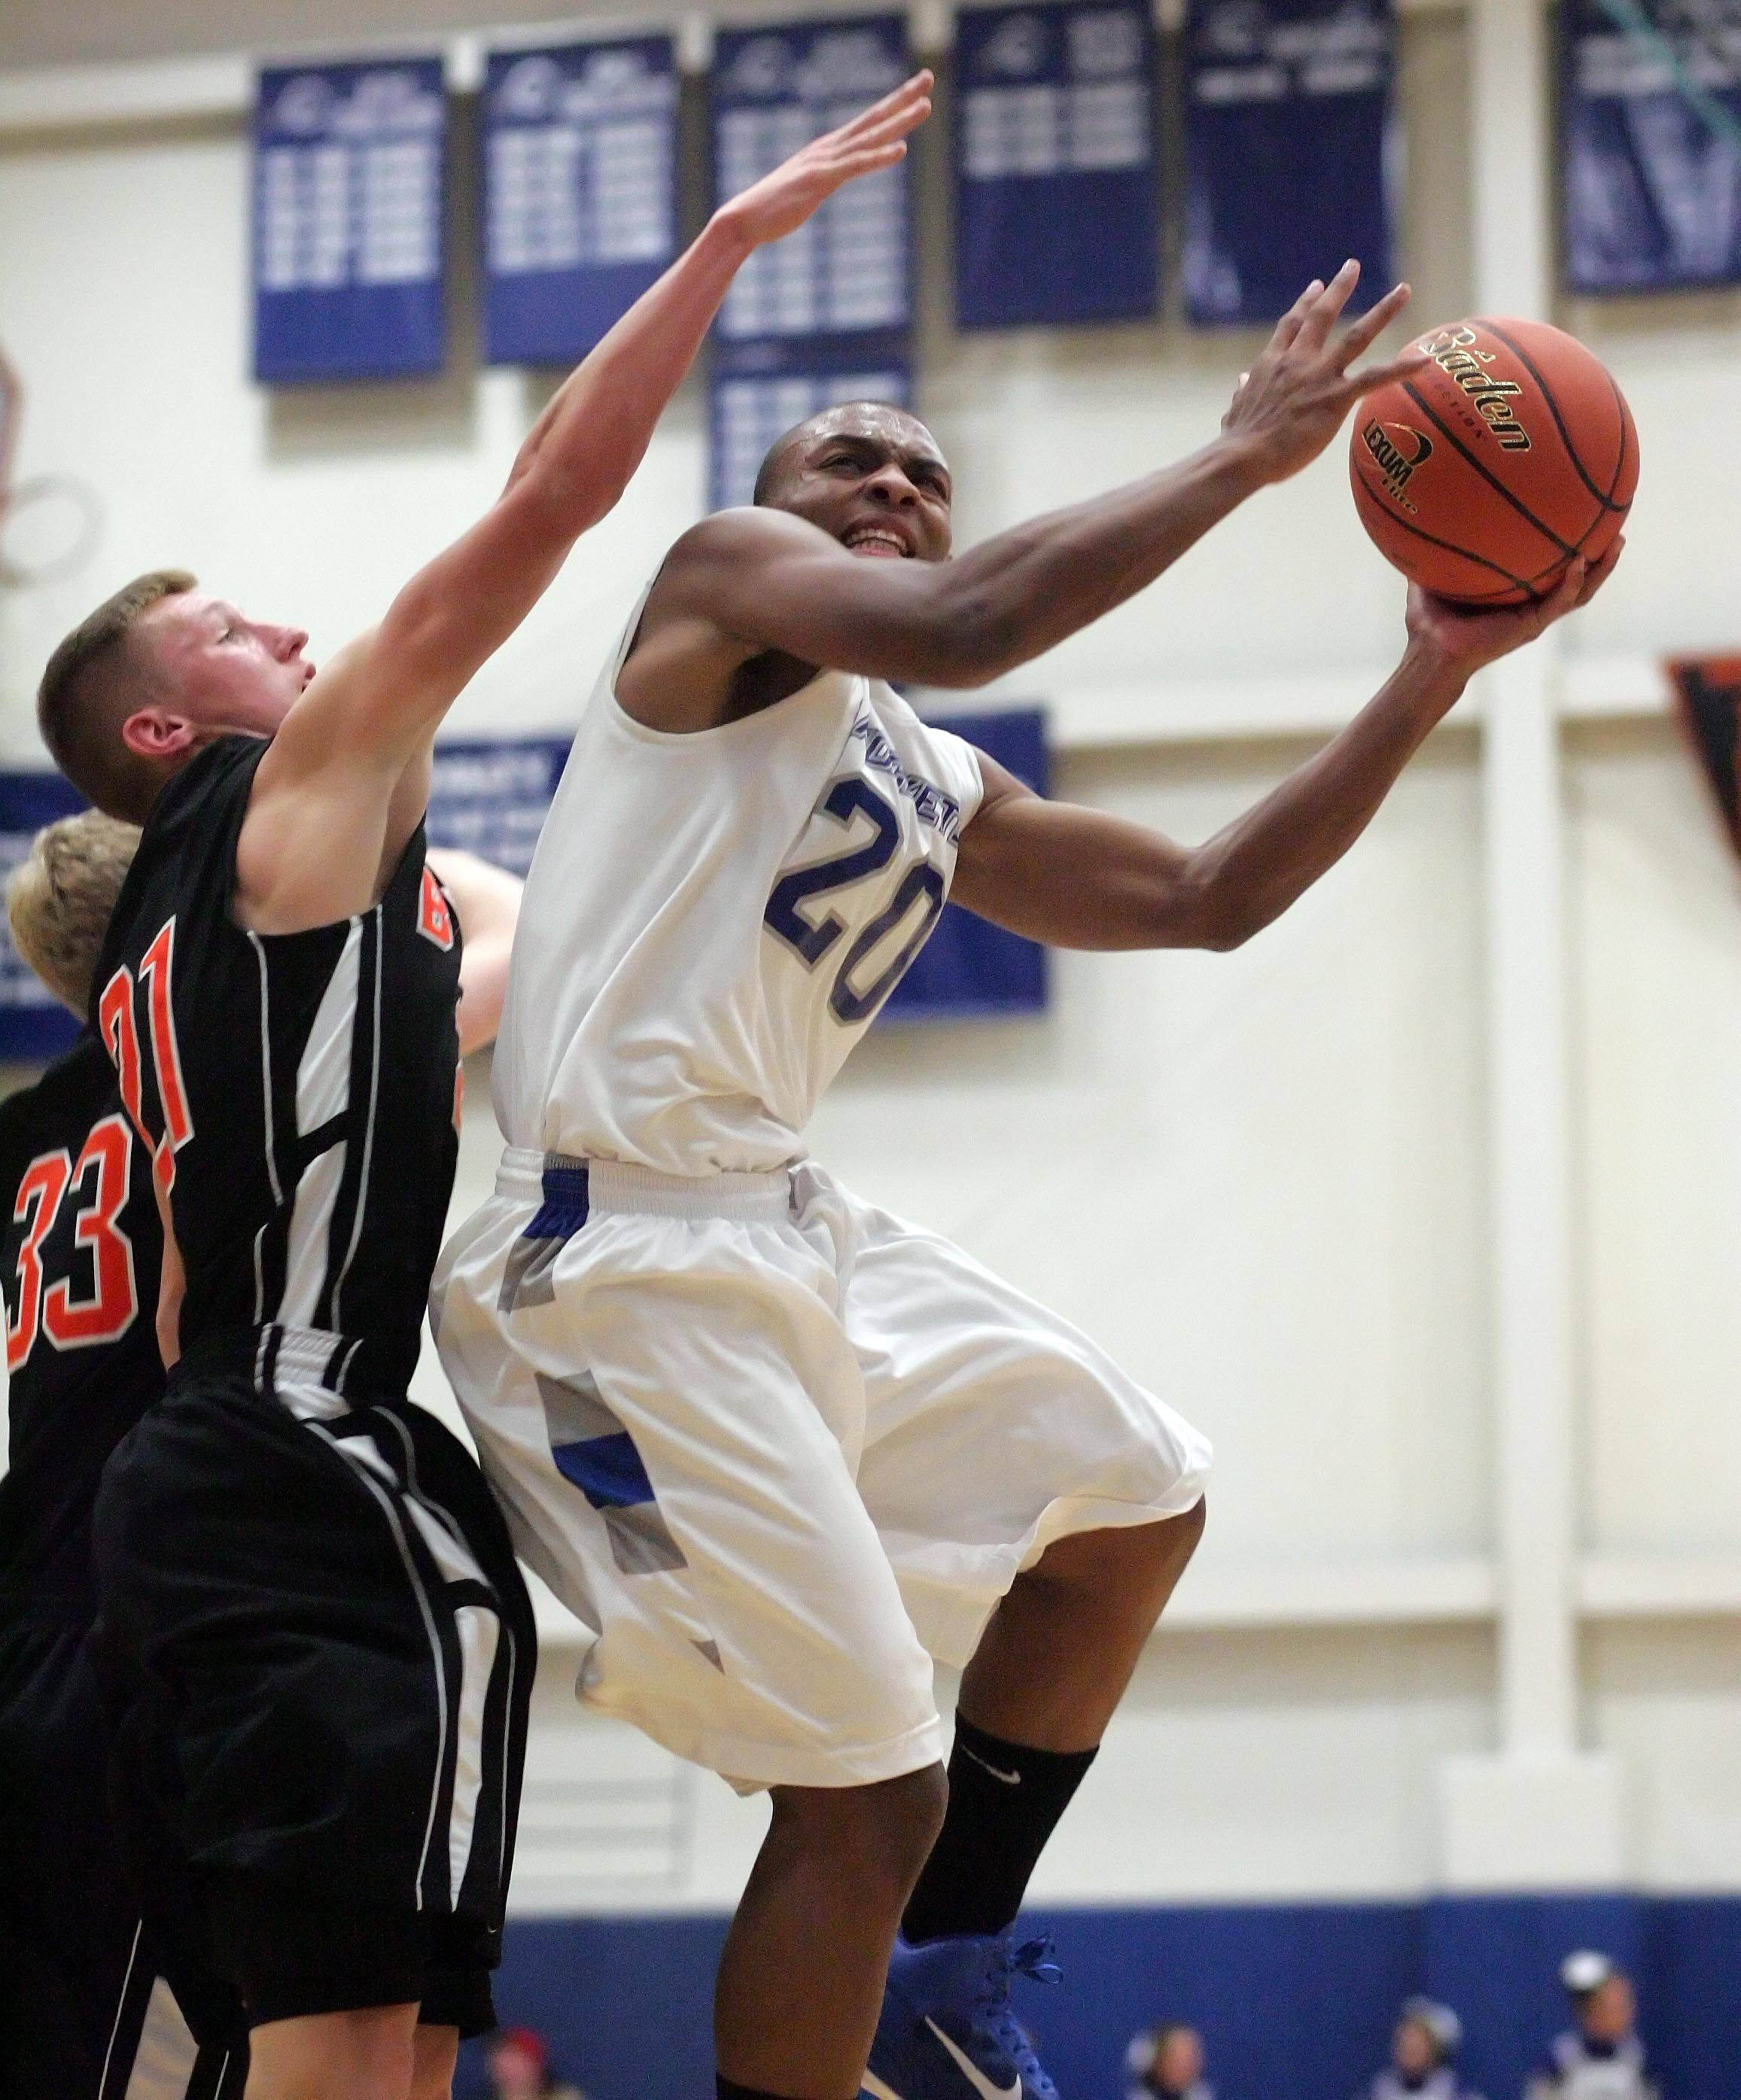 Burlington Central's Ray Hunnicutt, 20, heads to the hoop against Byron's defense Friday at Burlington Central.